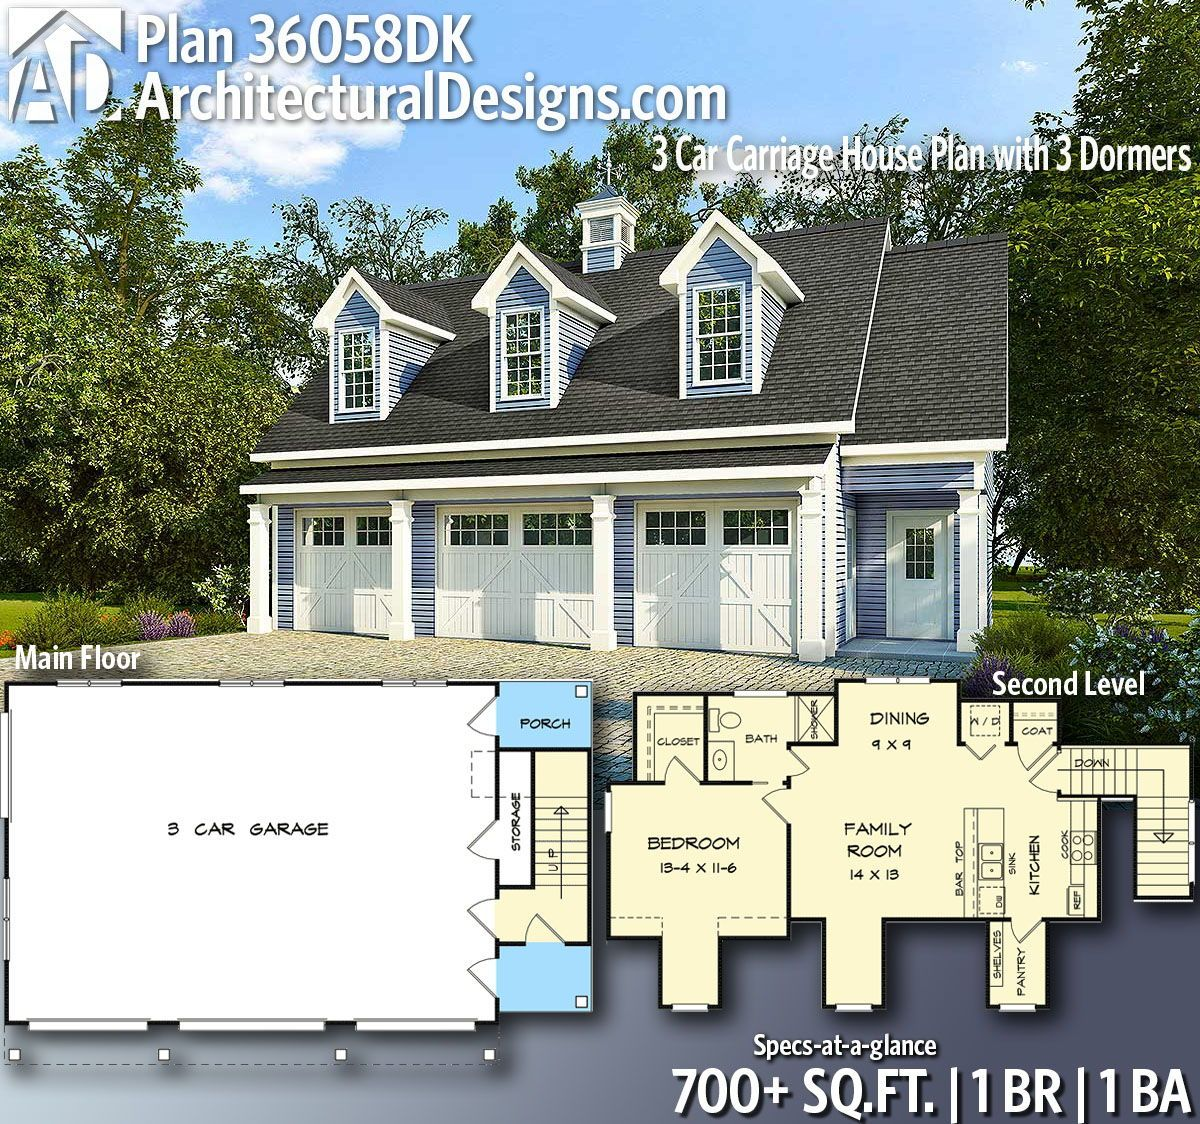 Plan 36058DK: 3 Car Carriage House Plan With 3 Dormers In